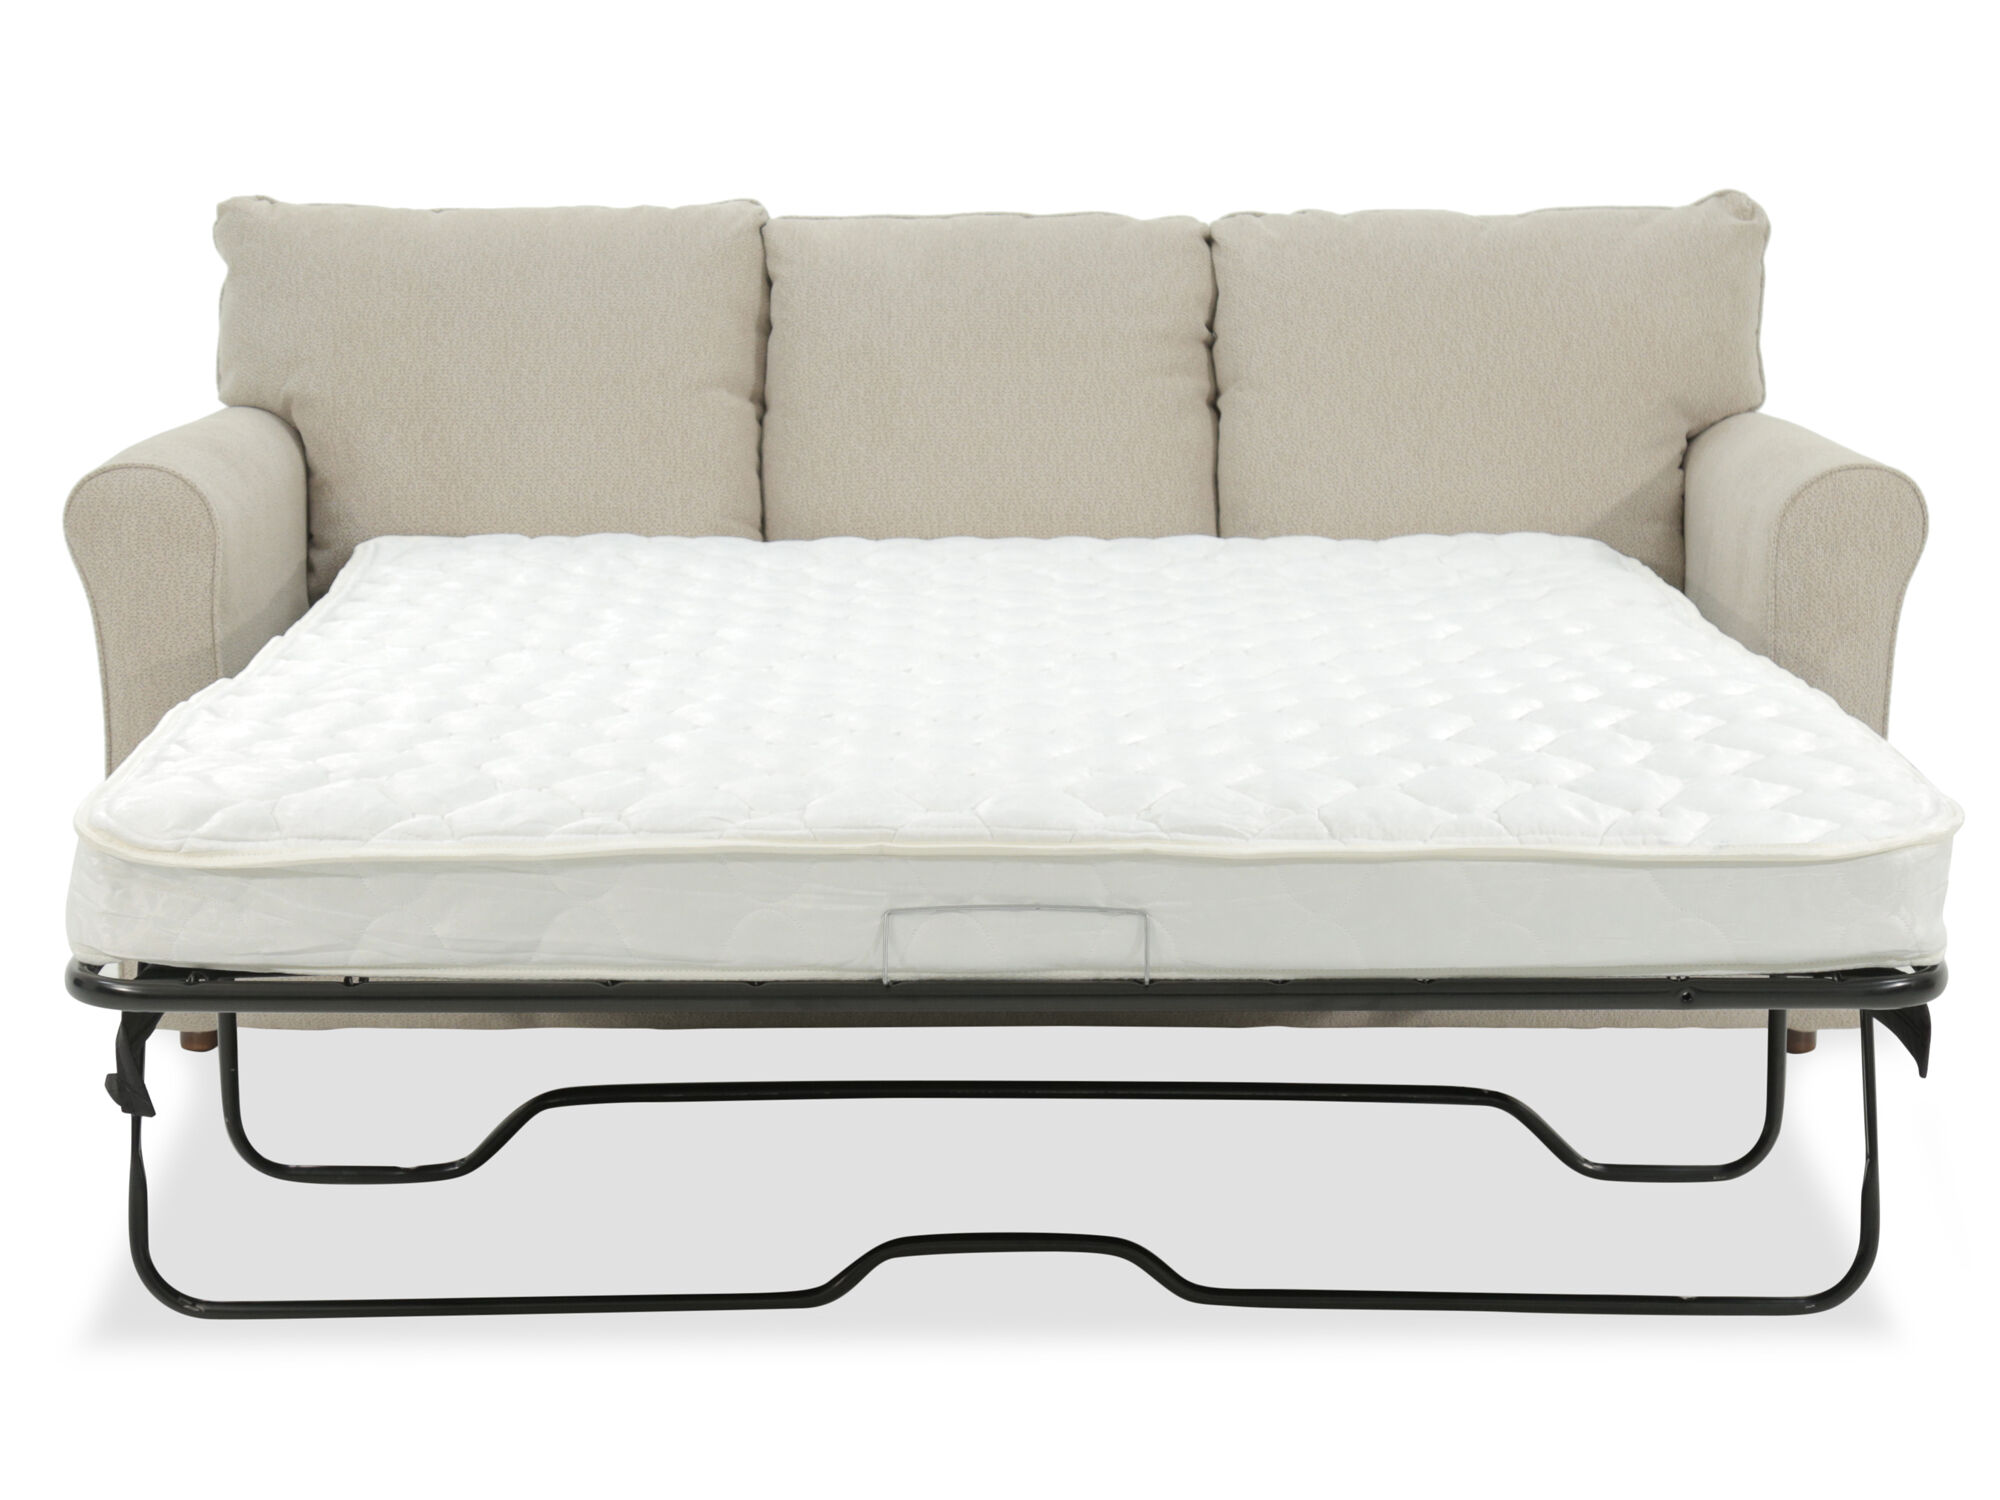 Casual 82 Queen Sleeper Sofa In Beige Mathis Brothers Furniture